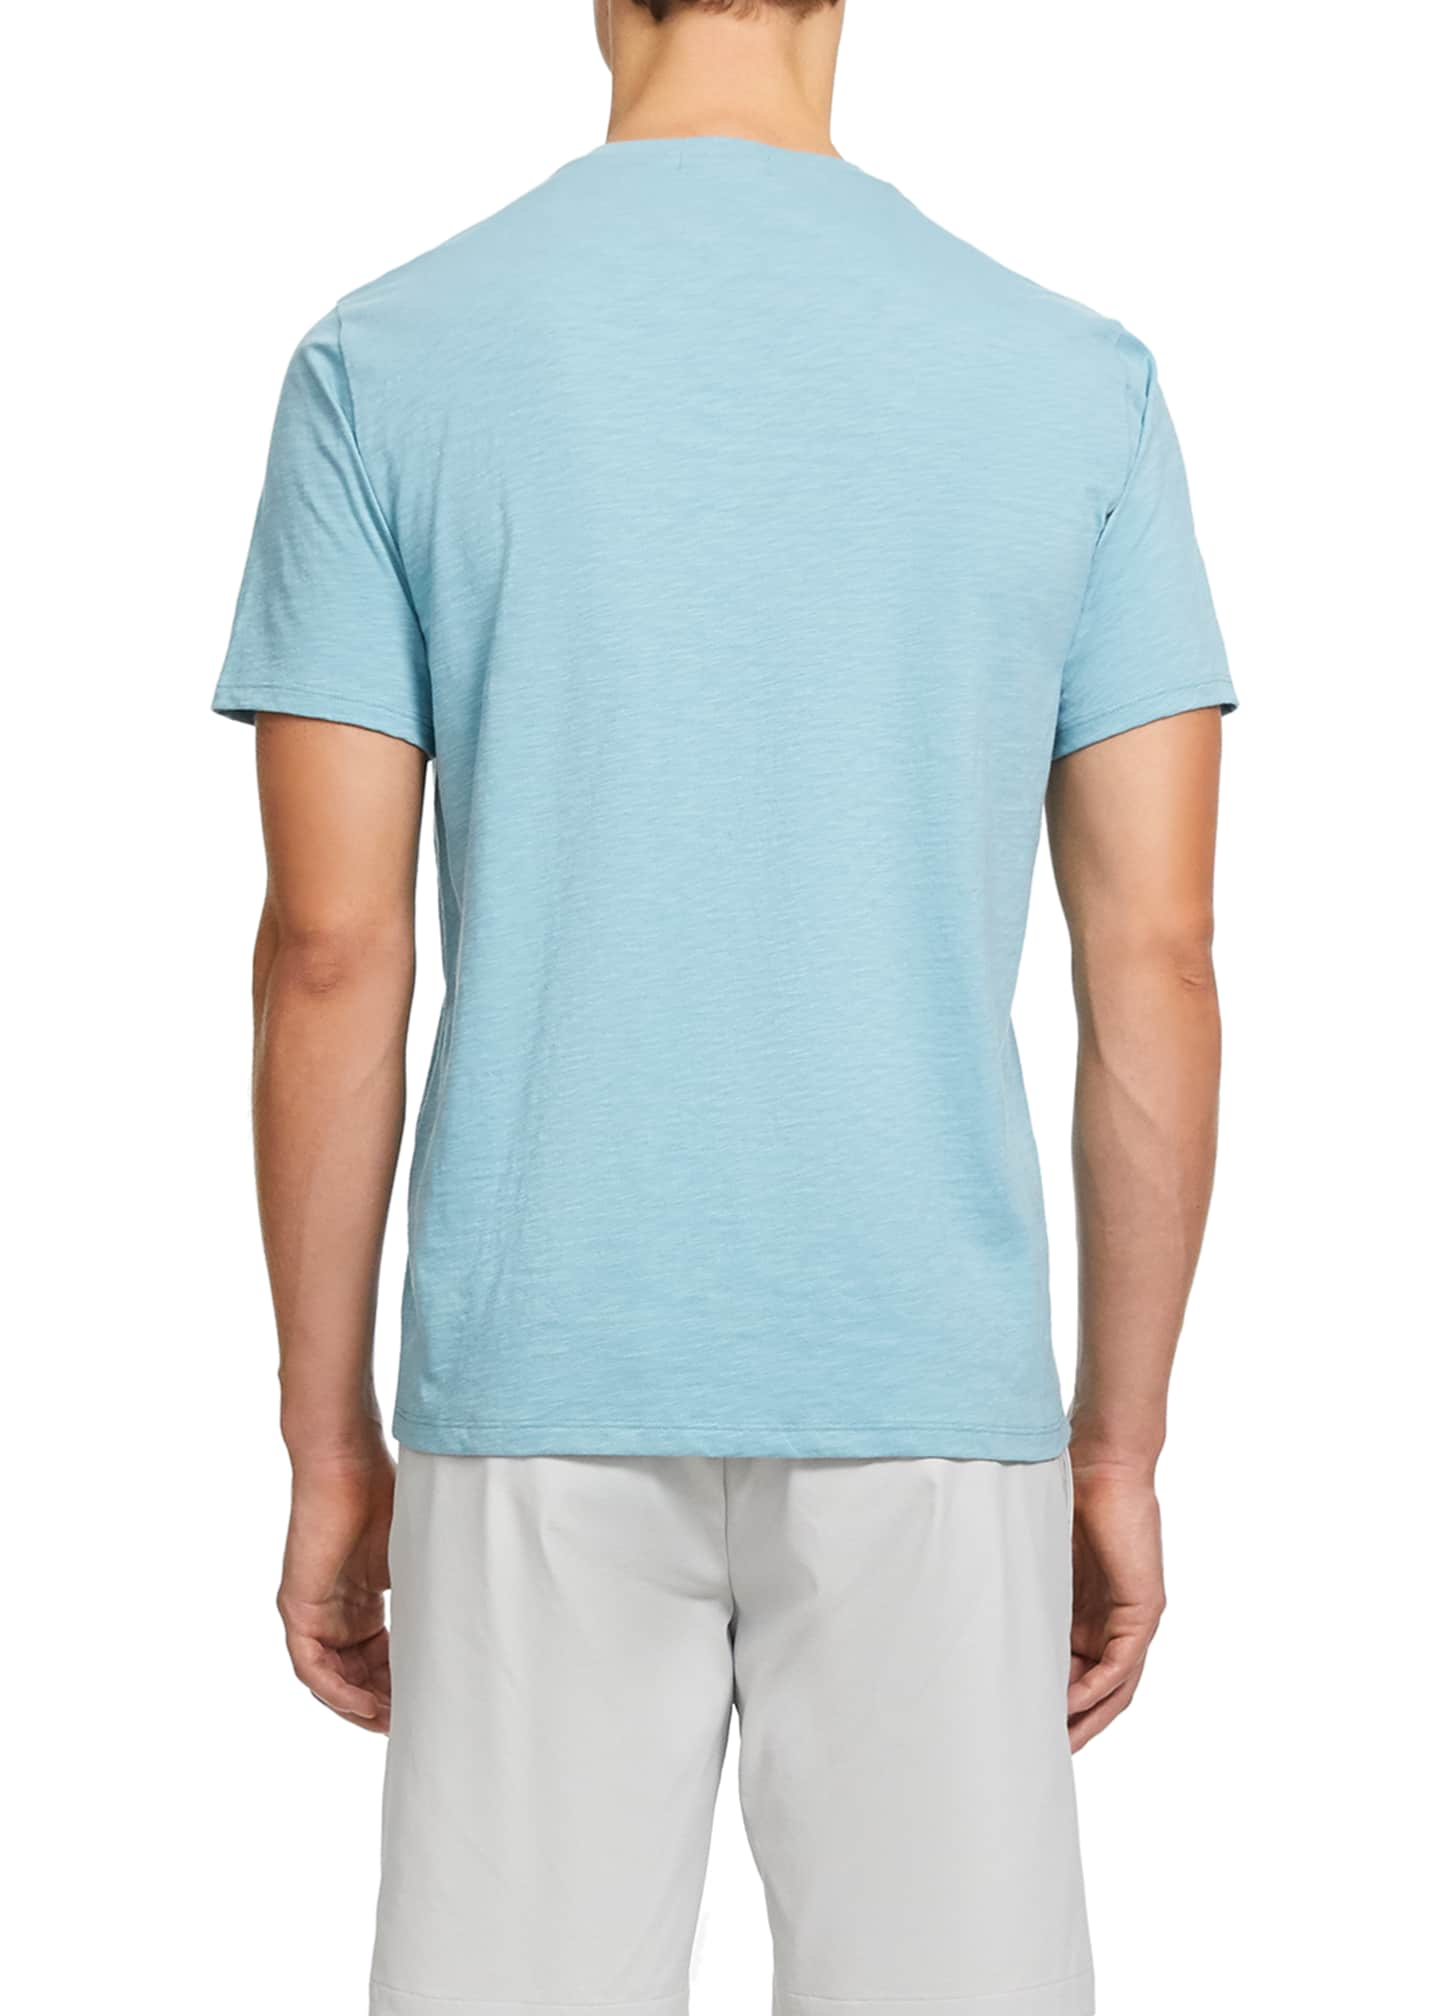 Image 3 of 3: Men's Cosmos Basic Short-Sleeve Tee